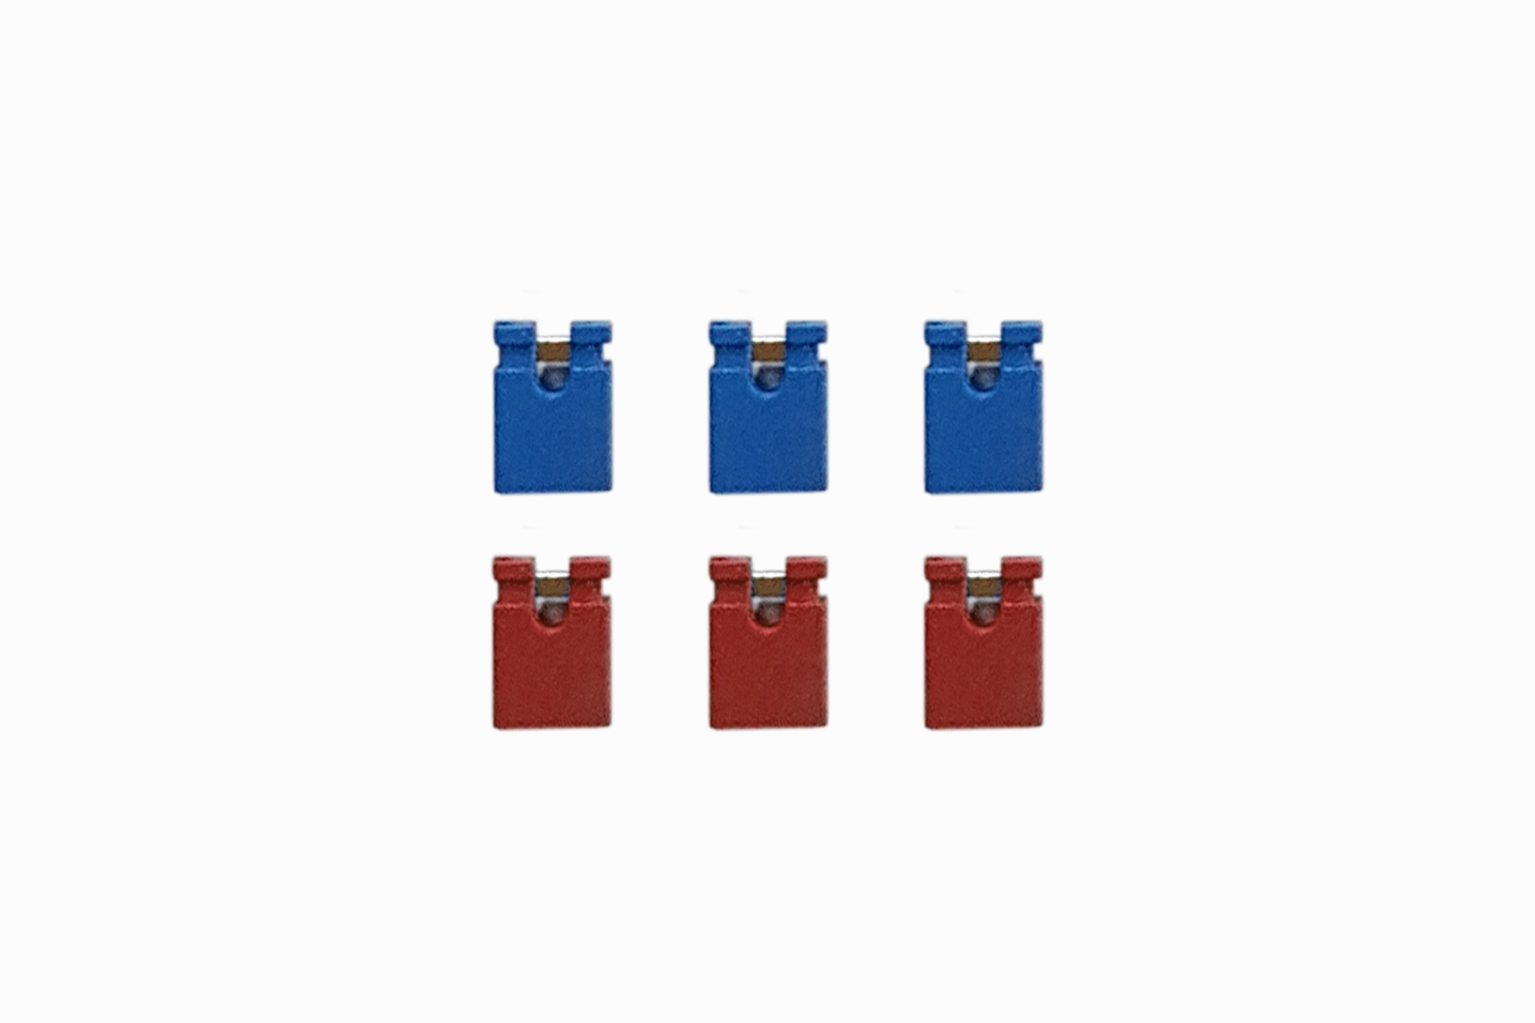 6 Spare ABC Board Headers, 3x Blue, 3x Red